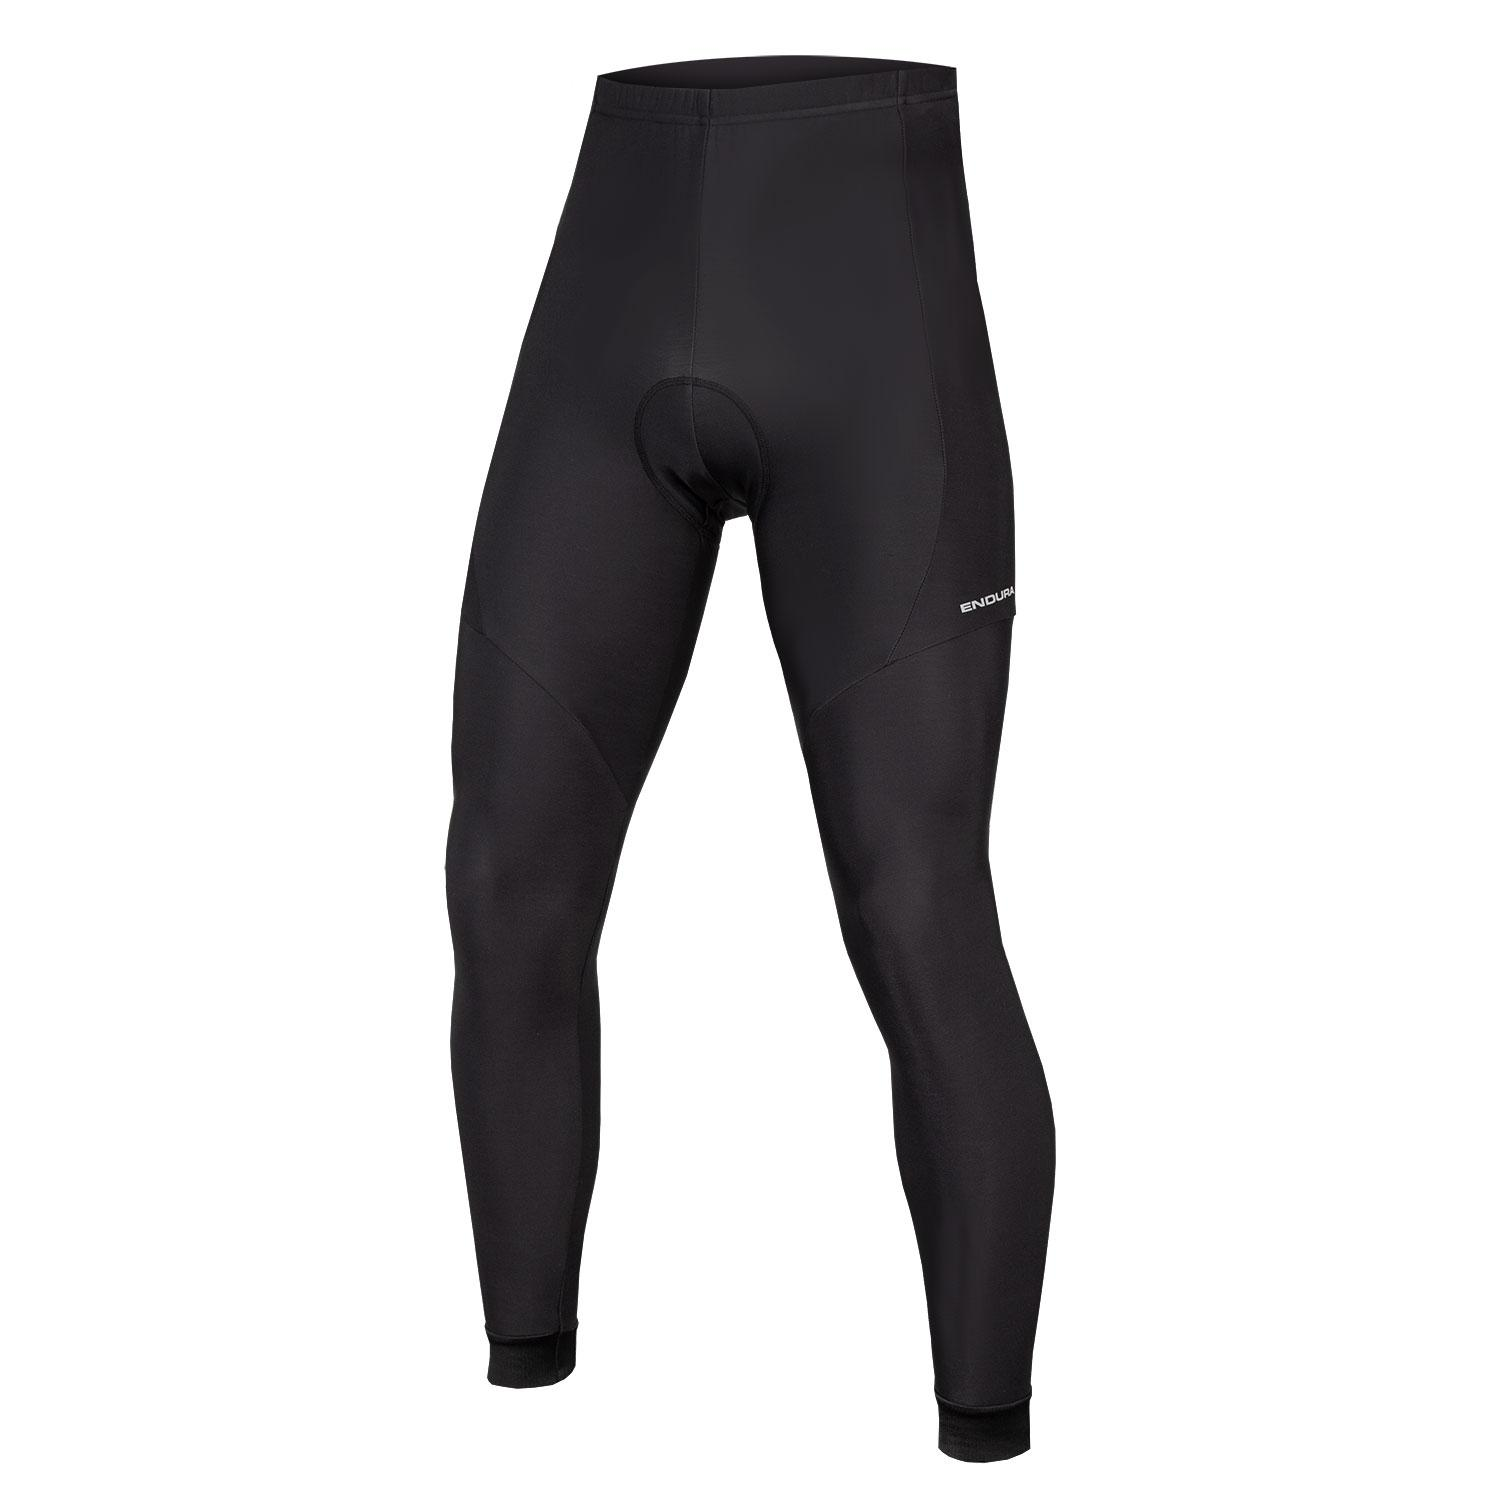 Endura Fietsbroek lang zonder bretels Heren Zwart - Xtract Waist Tight Black